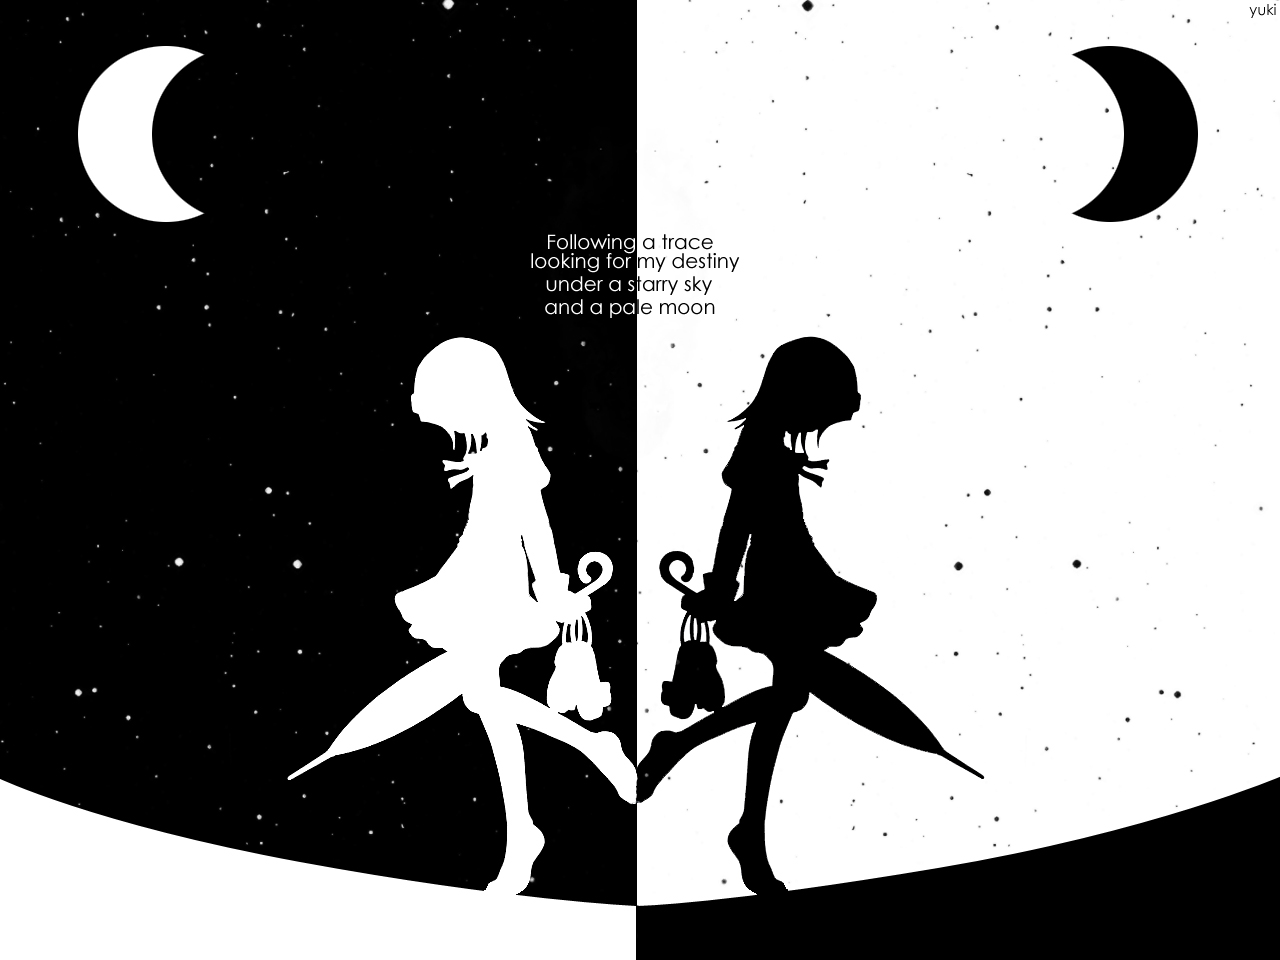 Black And White Anime Wallpaper | ANIME WALLPAPER